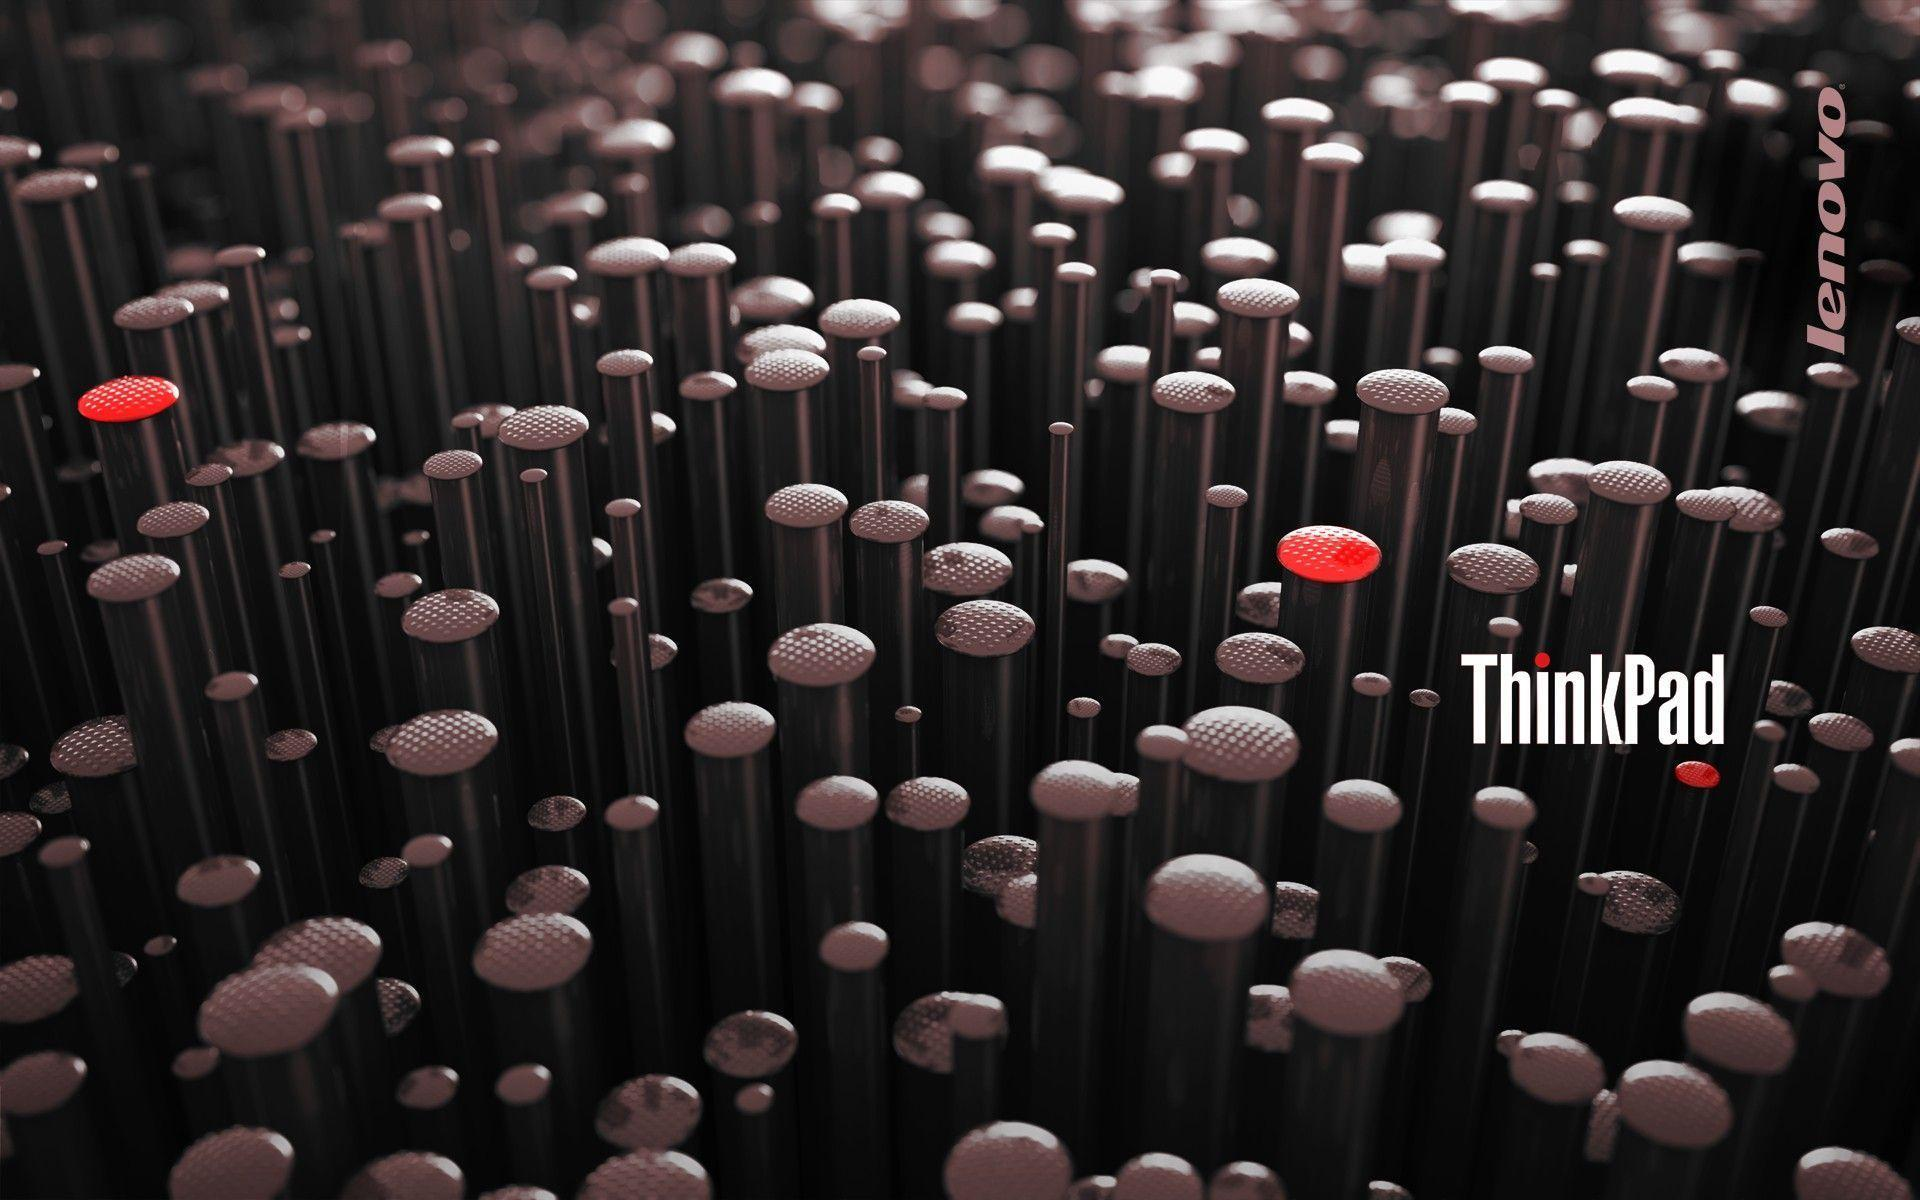 thinkpad wallpapers wallpaper - photo #7